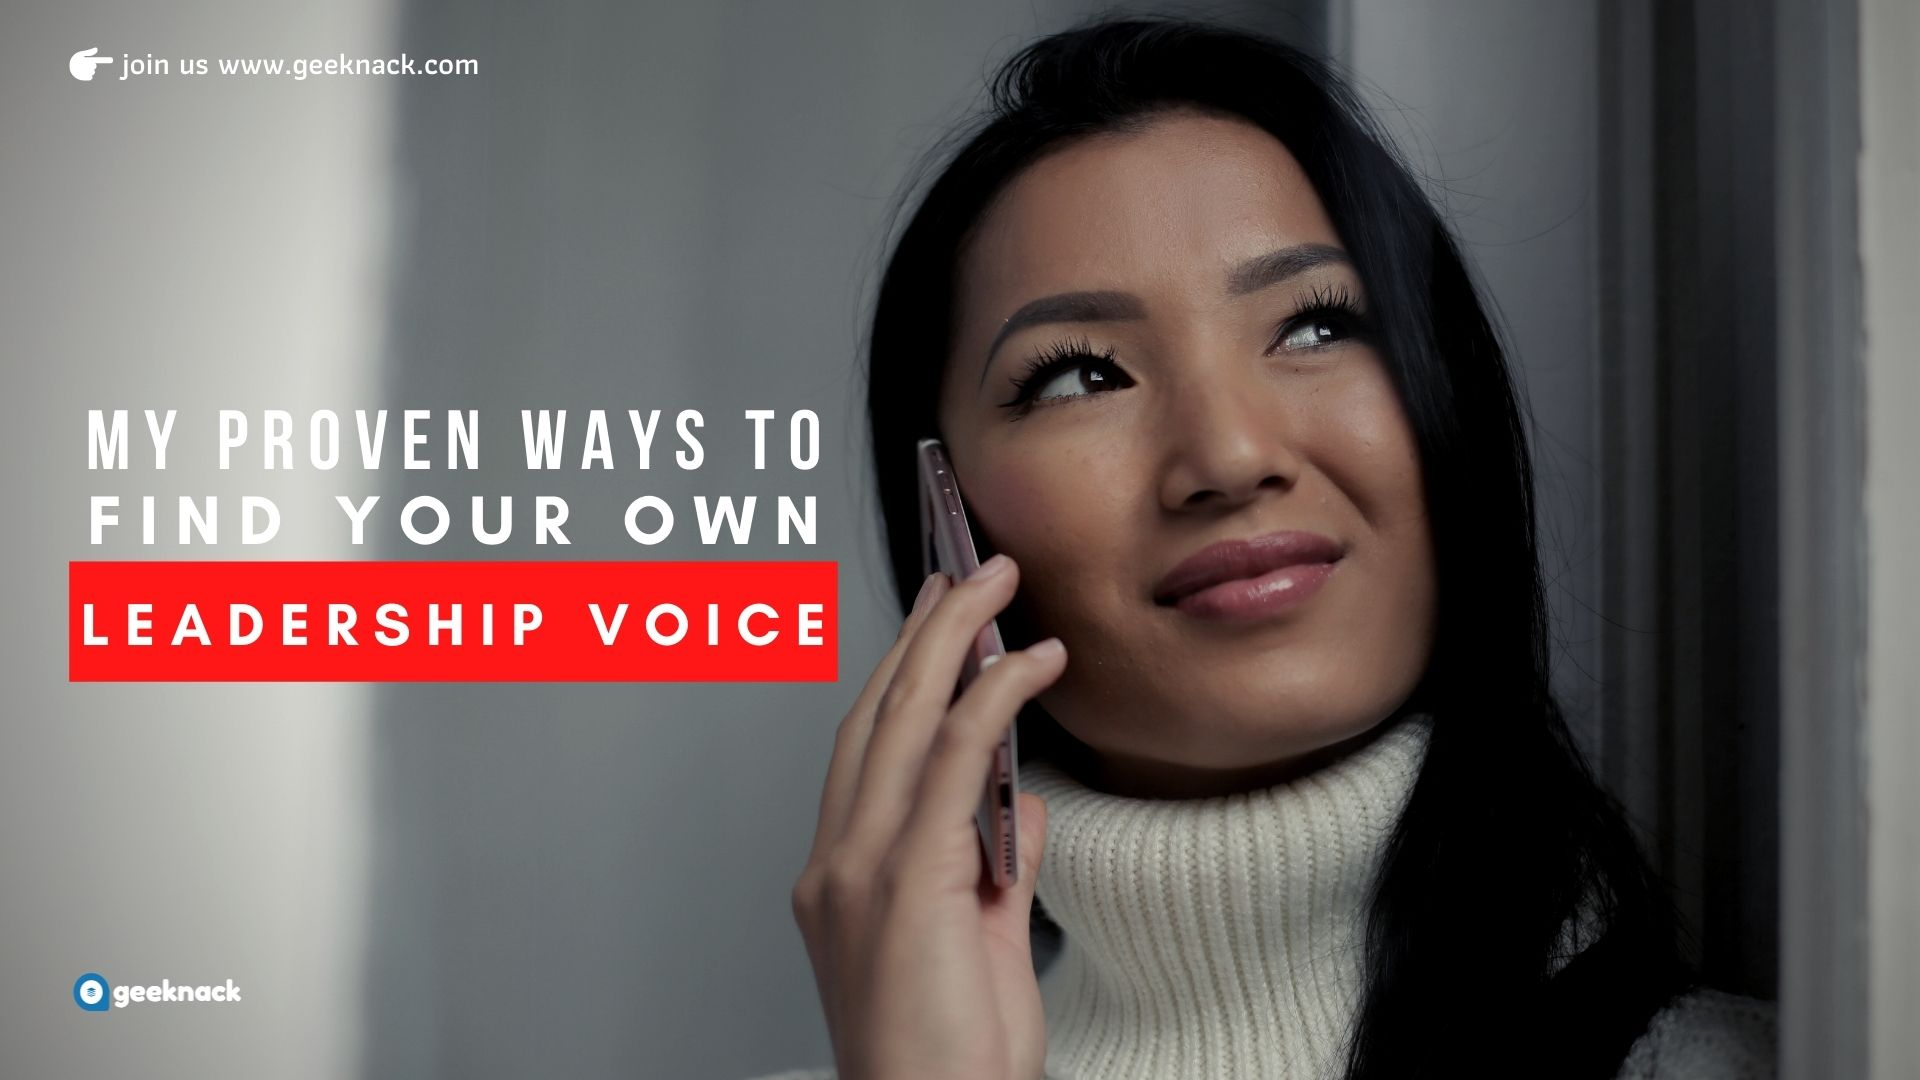 My Proven Ways To Find Your Own Leadership Voice cover